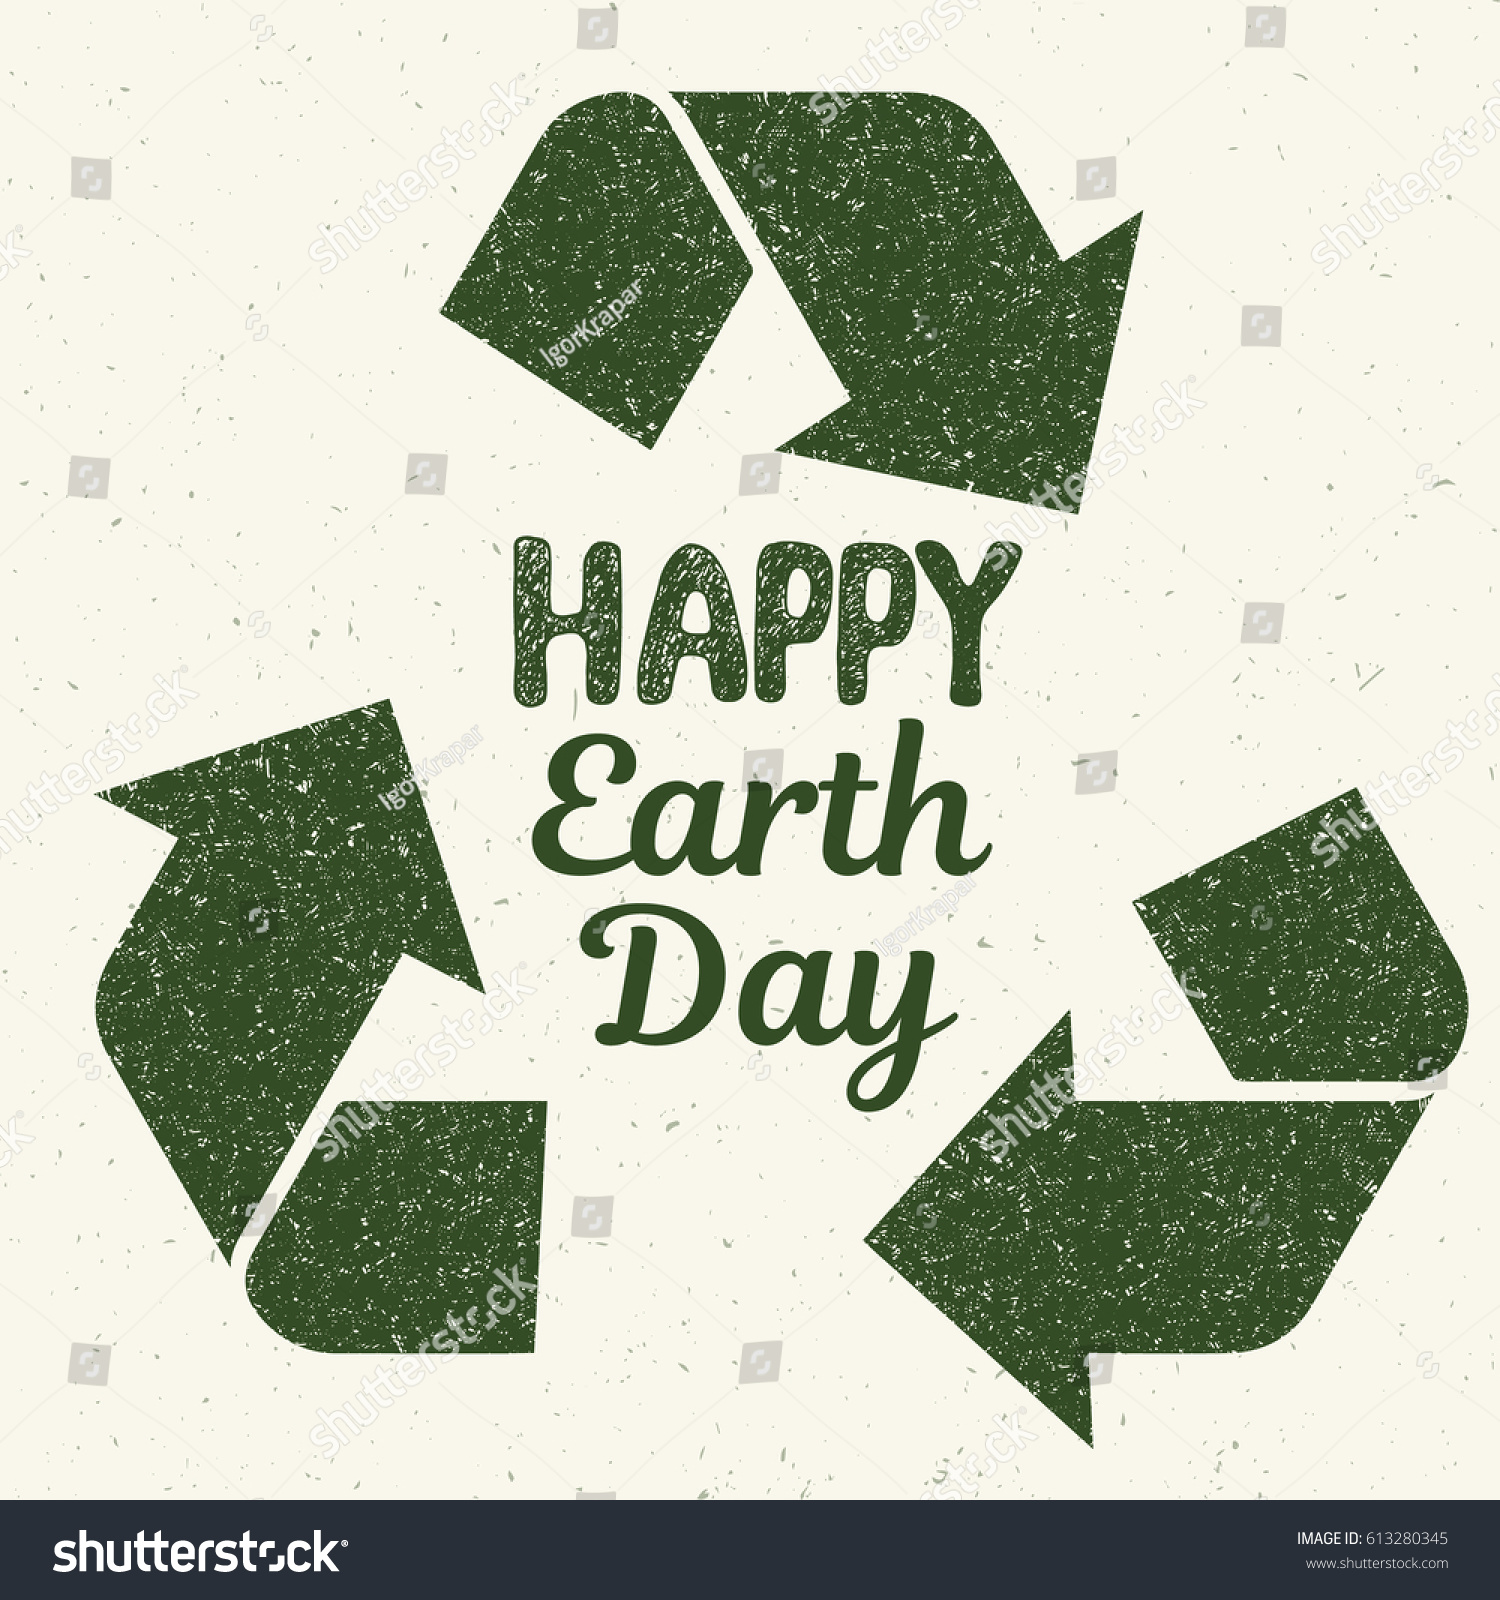 Happy earth day concept recycling symbol stock vector 613280345 happy earth day concept with recycling symbol posterunge graphic style illustration buycottarizona